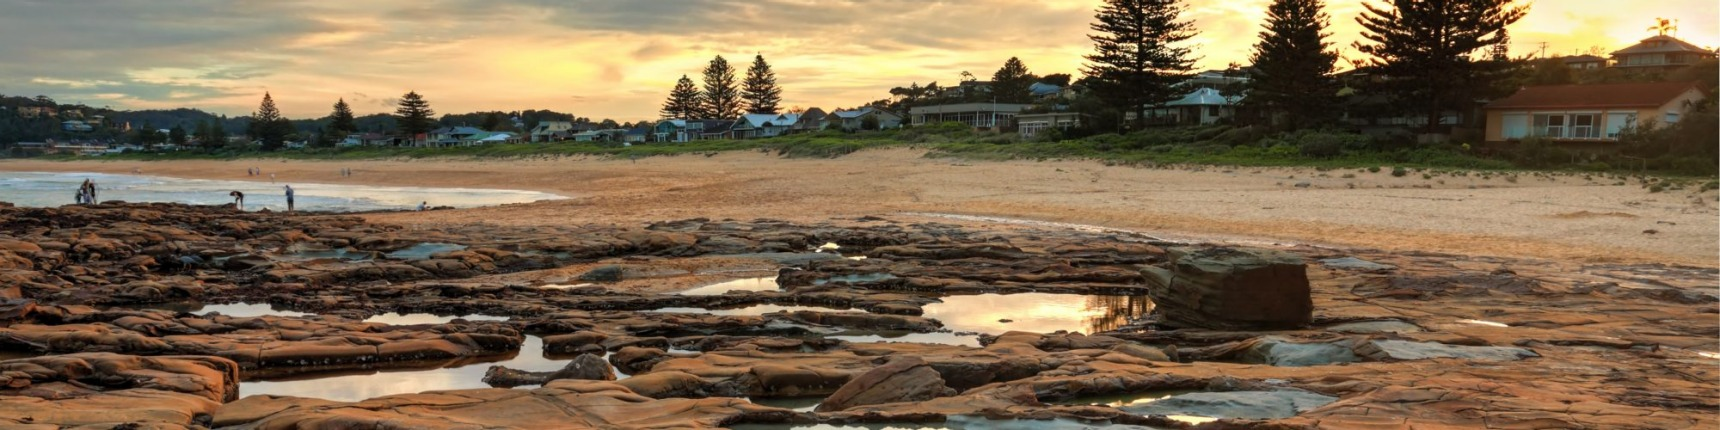 Avoca Beach Travel Guide | Plan Your Holiday in Avoca Beach